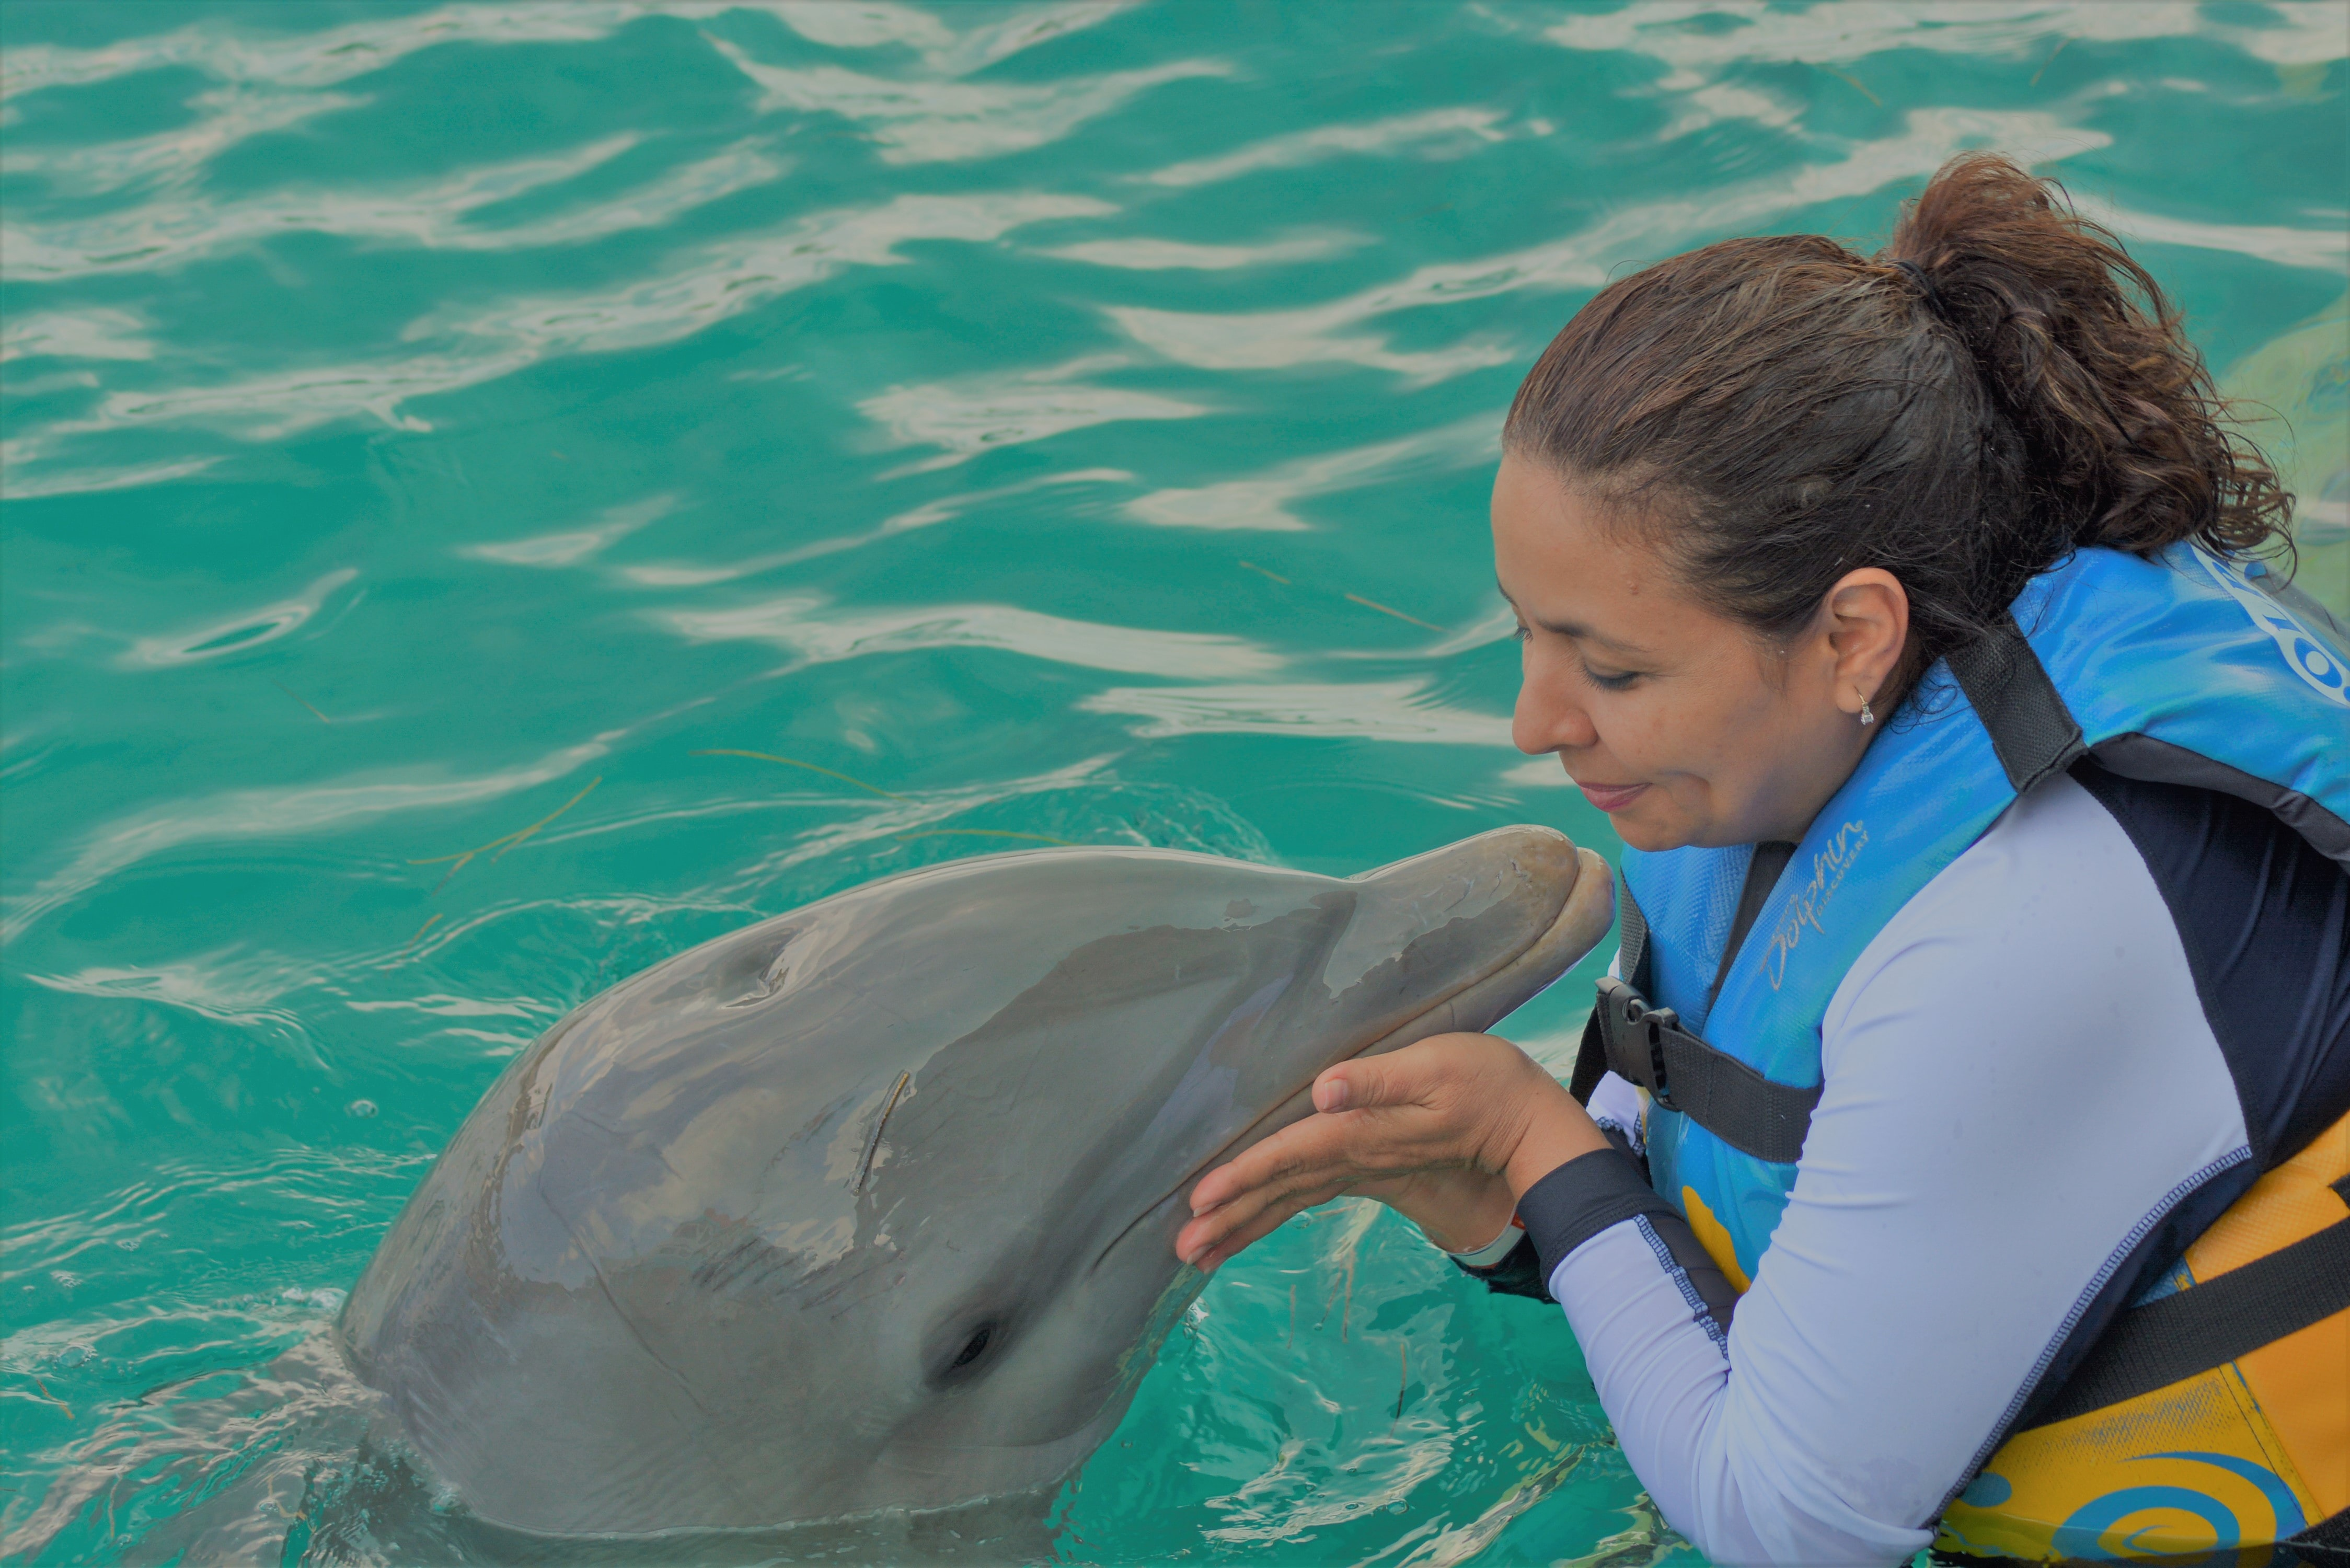 woman playing with dolphin in body of water